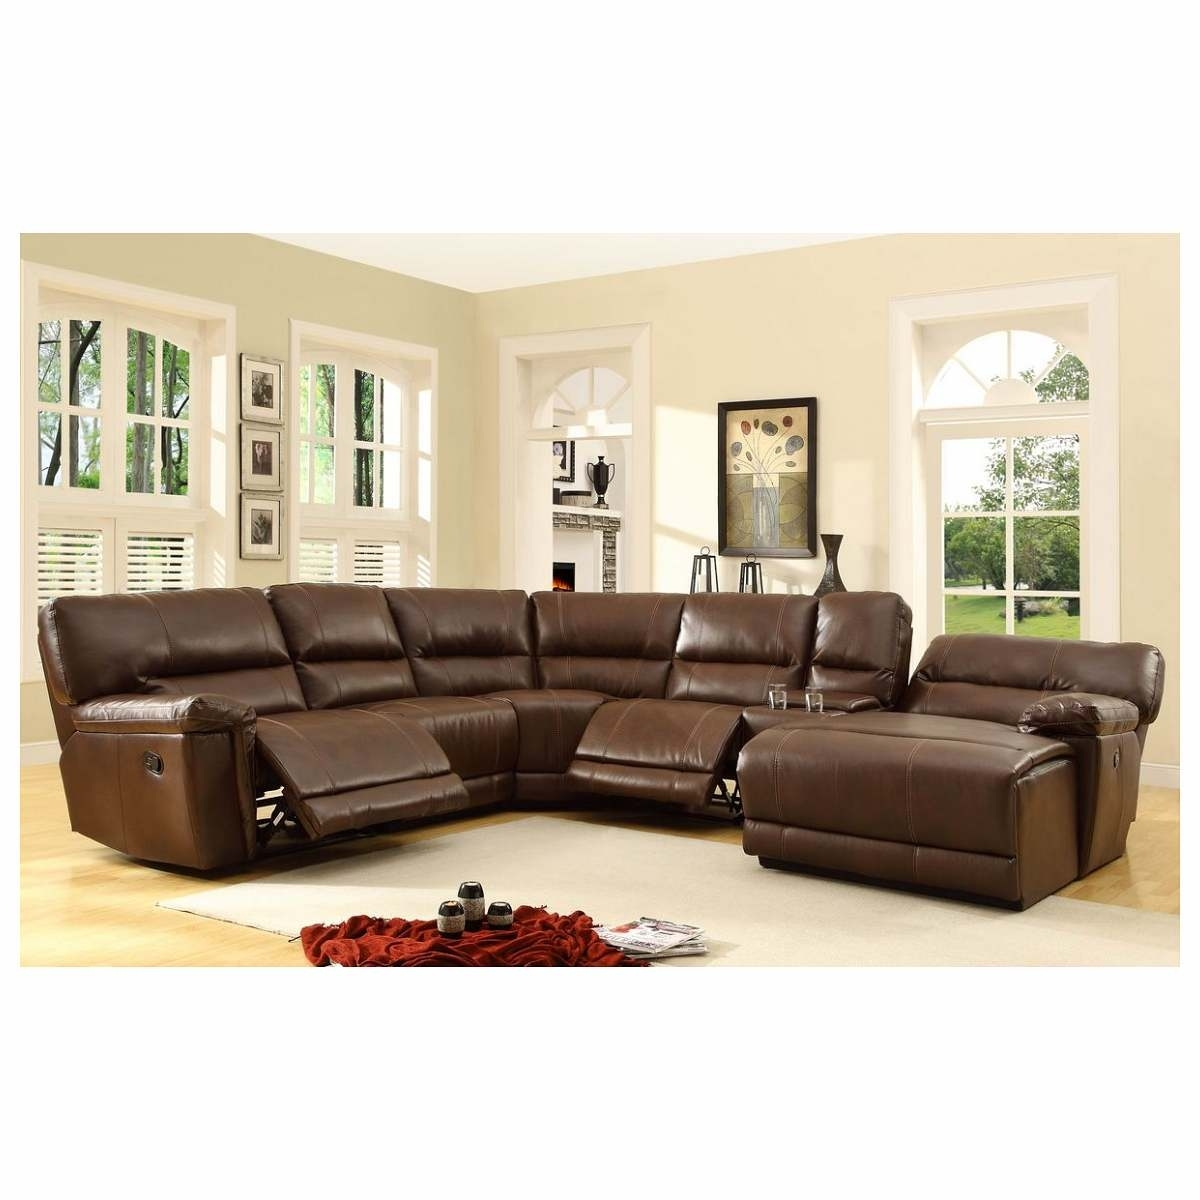 6 Pc Blythe Collection Brown Bonded Leather Match Upholstered Throughout 6 Piece Leather Sectional Sofas (Photo 5 of 10)